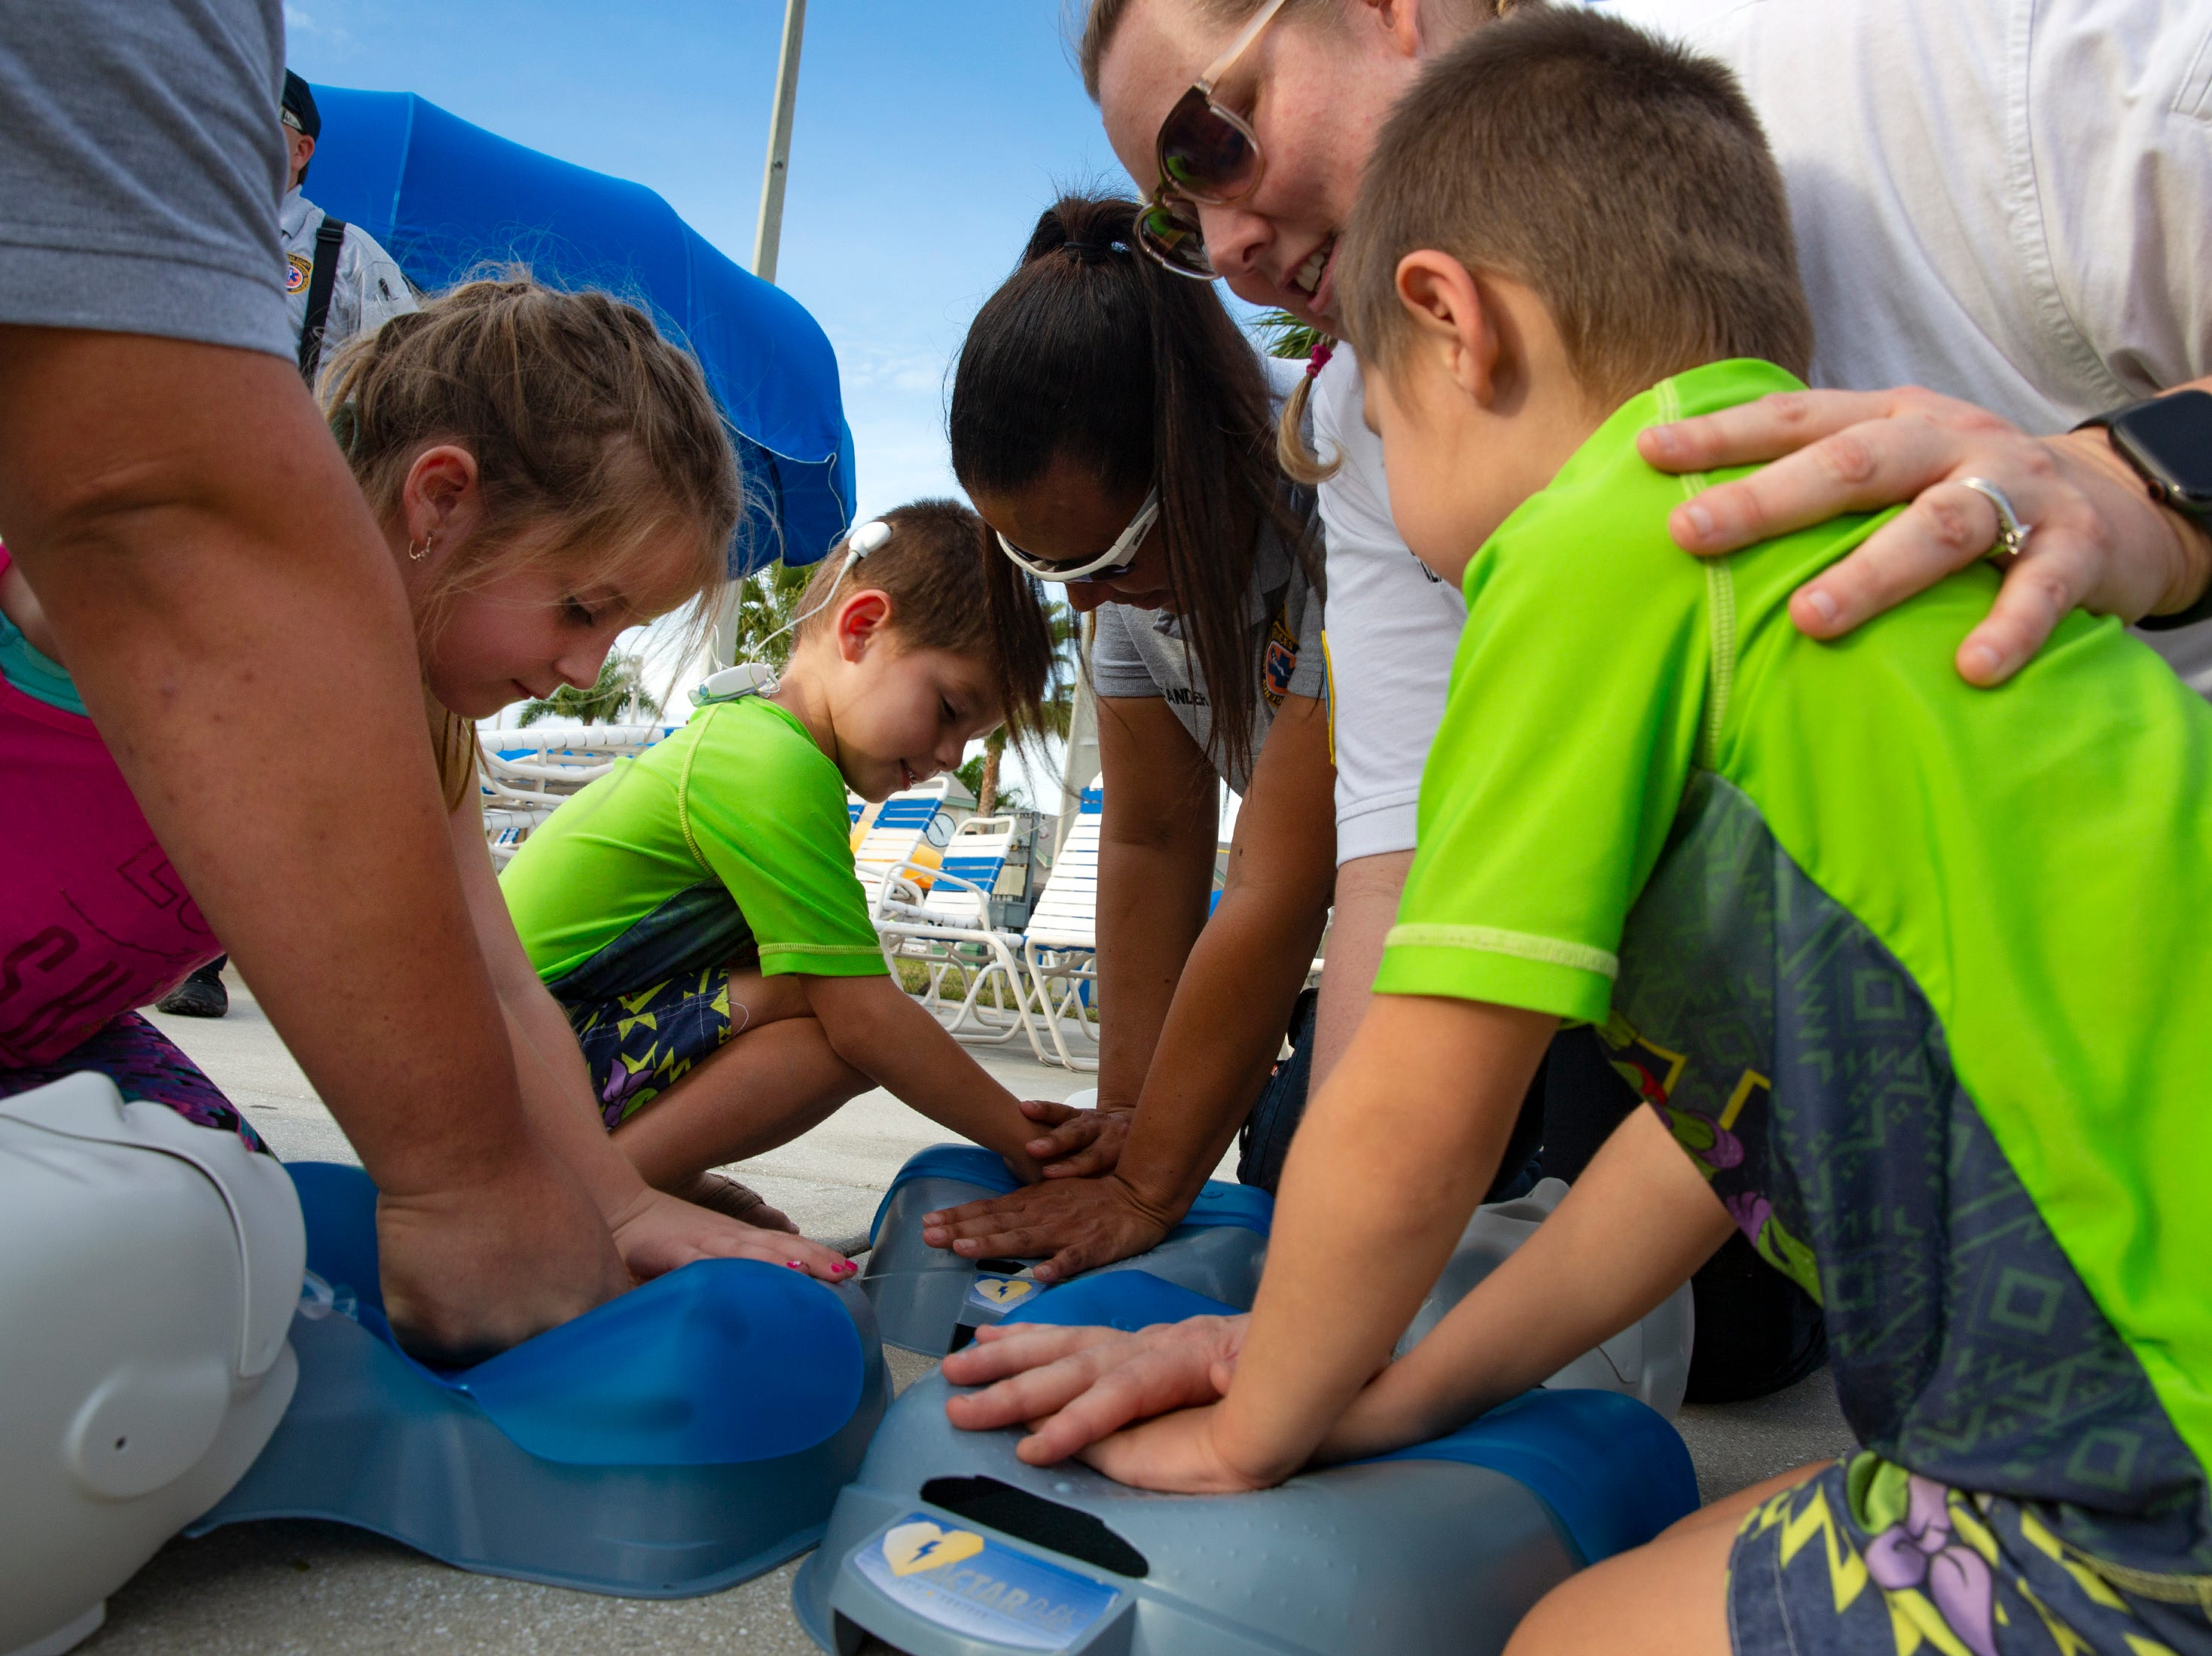 Ava Carranza, 6, from left, and her brothers Jacob Carranza, 4, and Luca Carranza, from Naples, learn CPR techniques from members of the  Collier County Emergency Medical Services during the Great Naples Rubber Duck Race and Water Safety Festival on Saturday, Feb. 2, 2019, at the Sun-N-Fun Lagoon in East Naples.